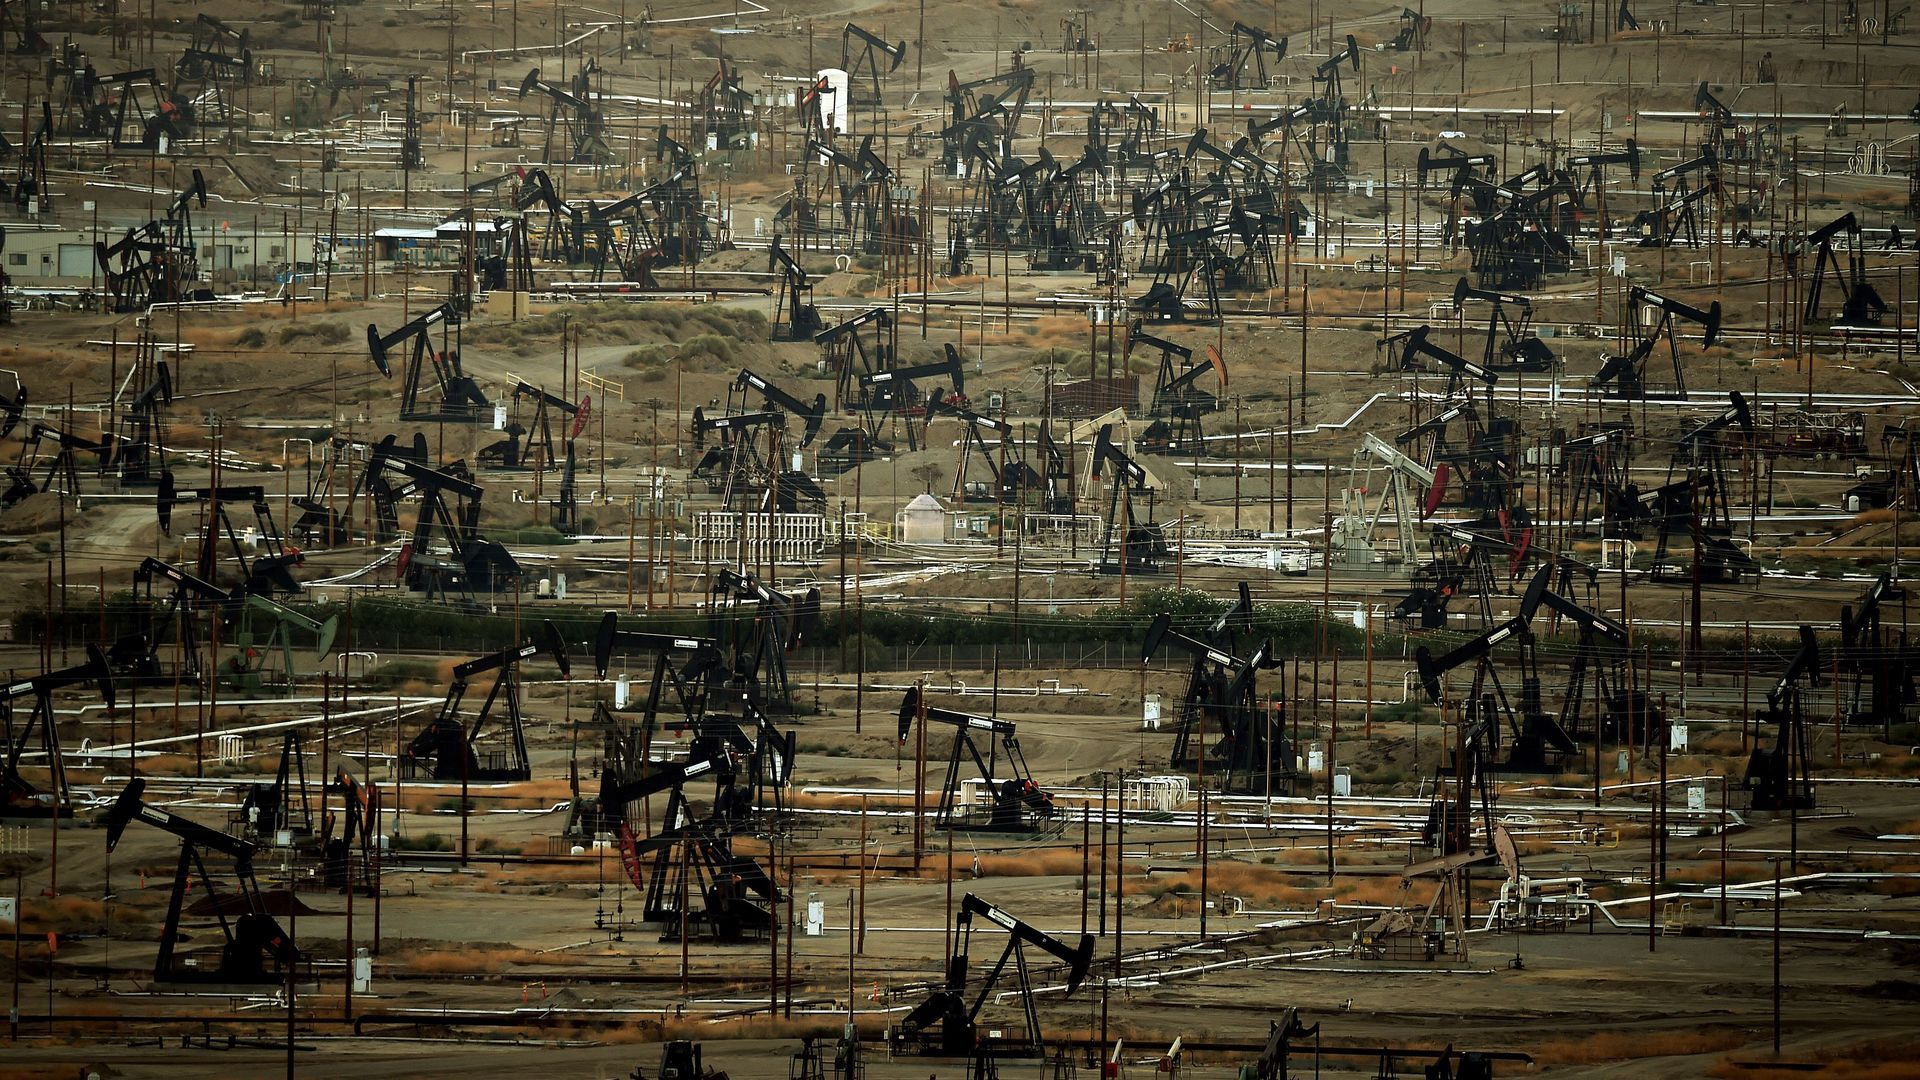 A general view shows oil pumping jacks and drilling pads at the Kern River Oil Field